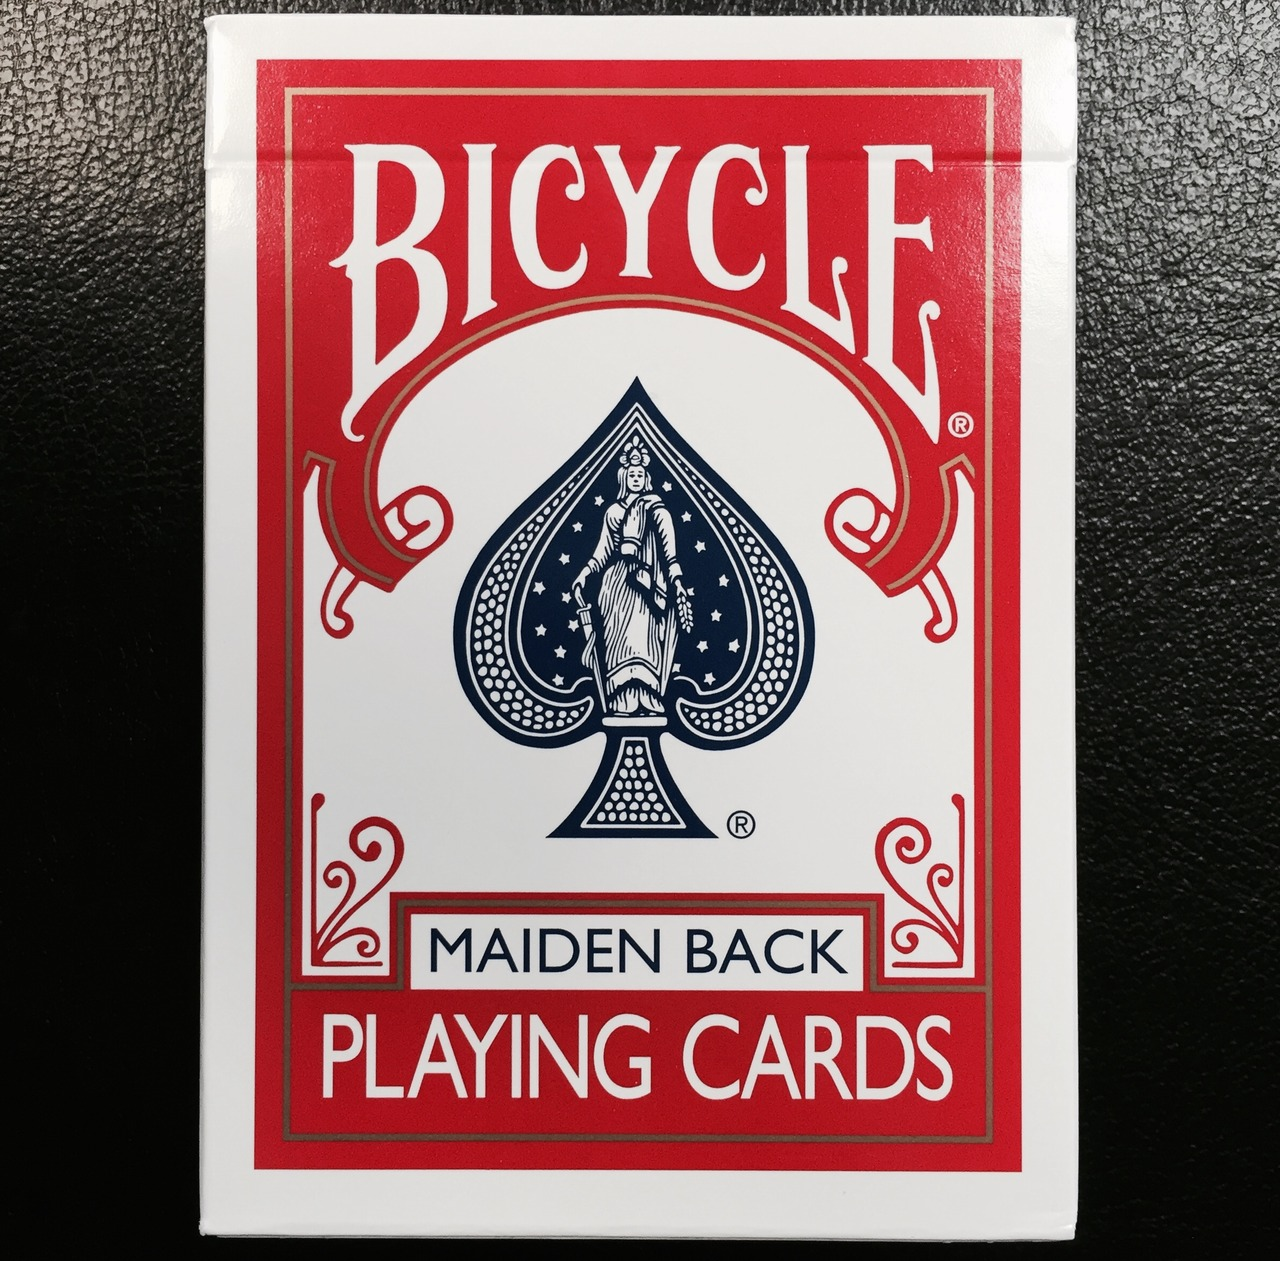 Bicycle Cards Box Template - 4k Wallpapers